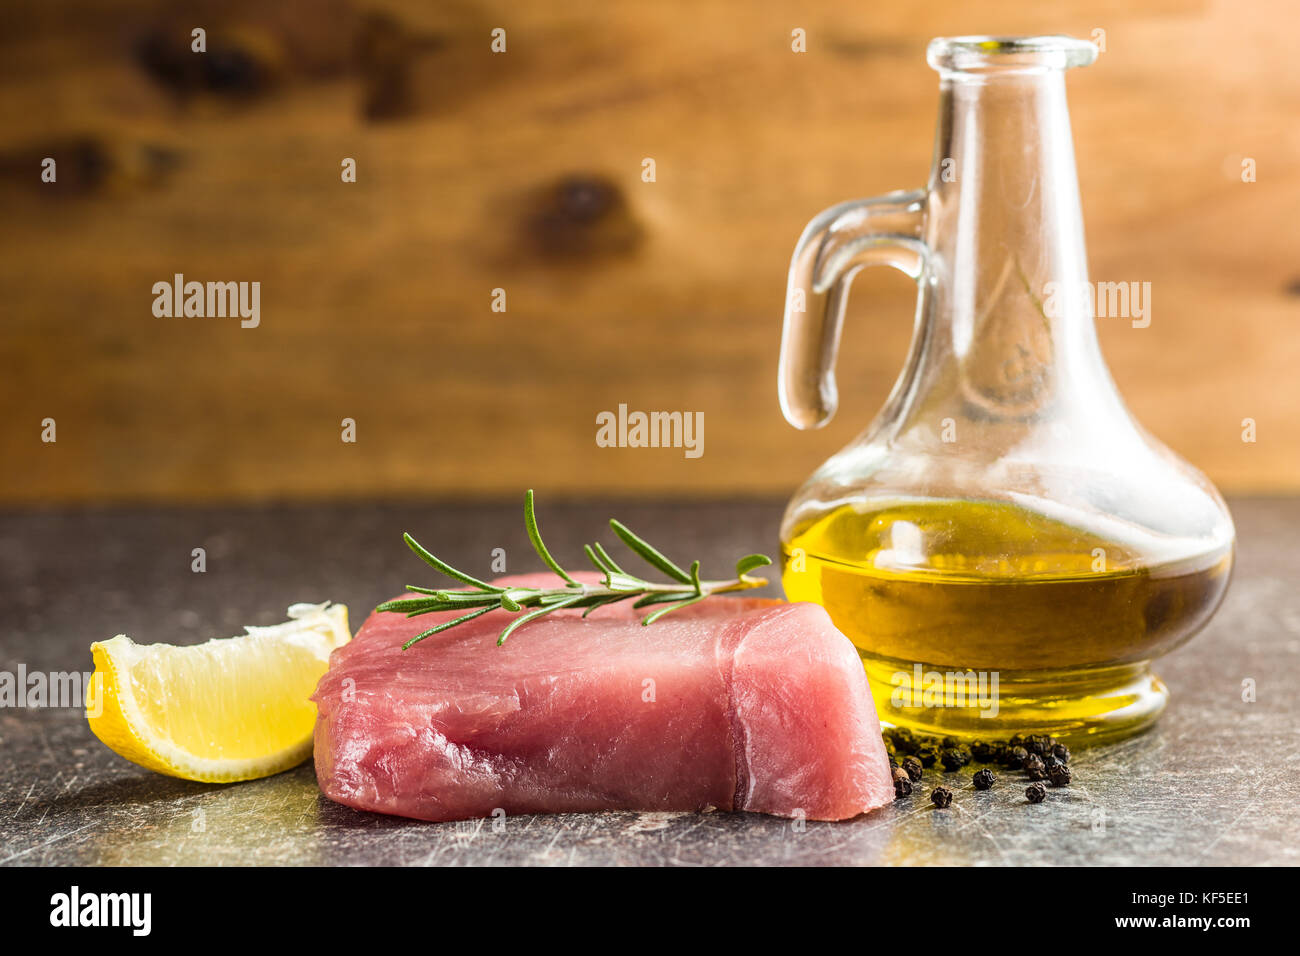 Steak de thon cru frais sur la vieille table de cuisine. Photo Stock